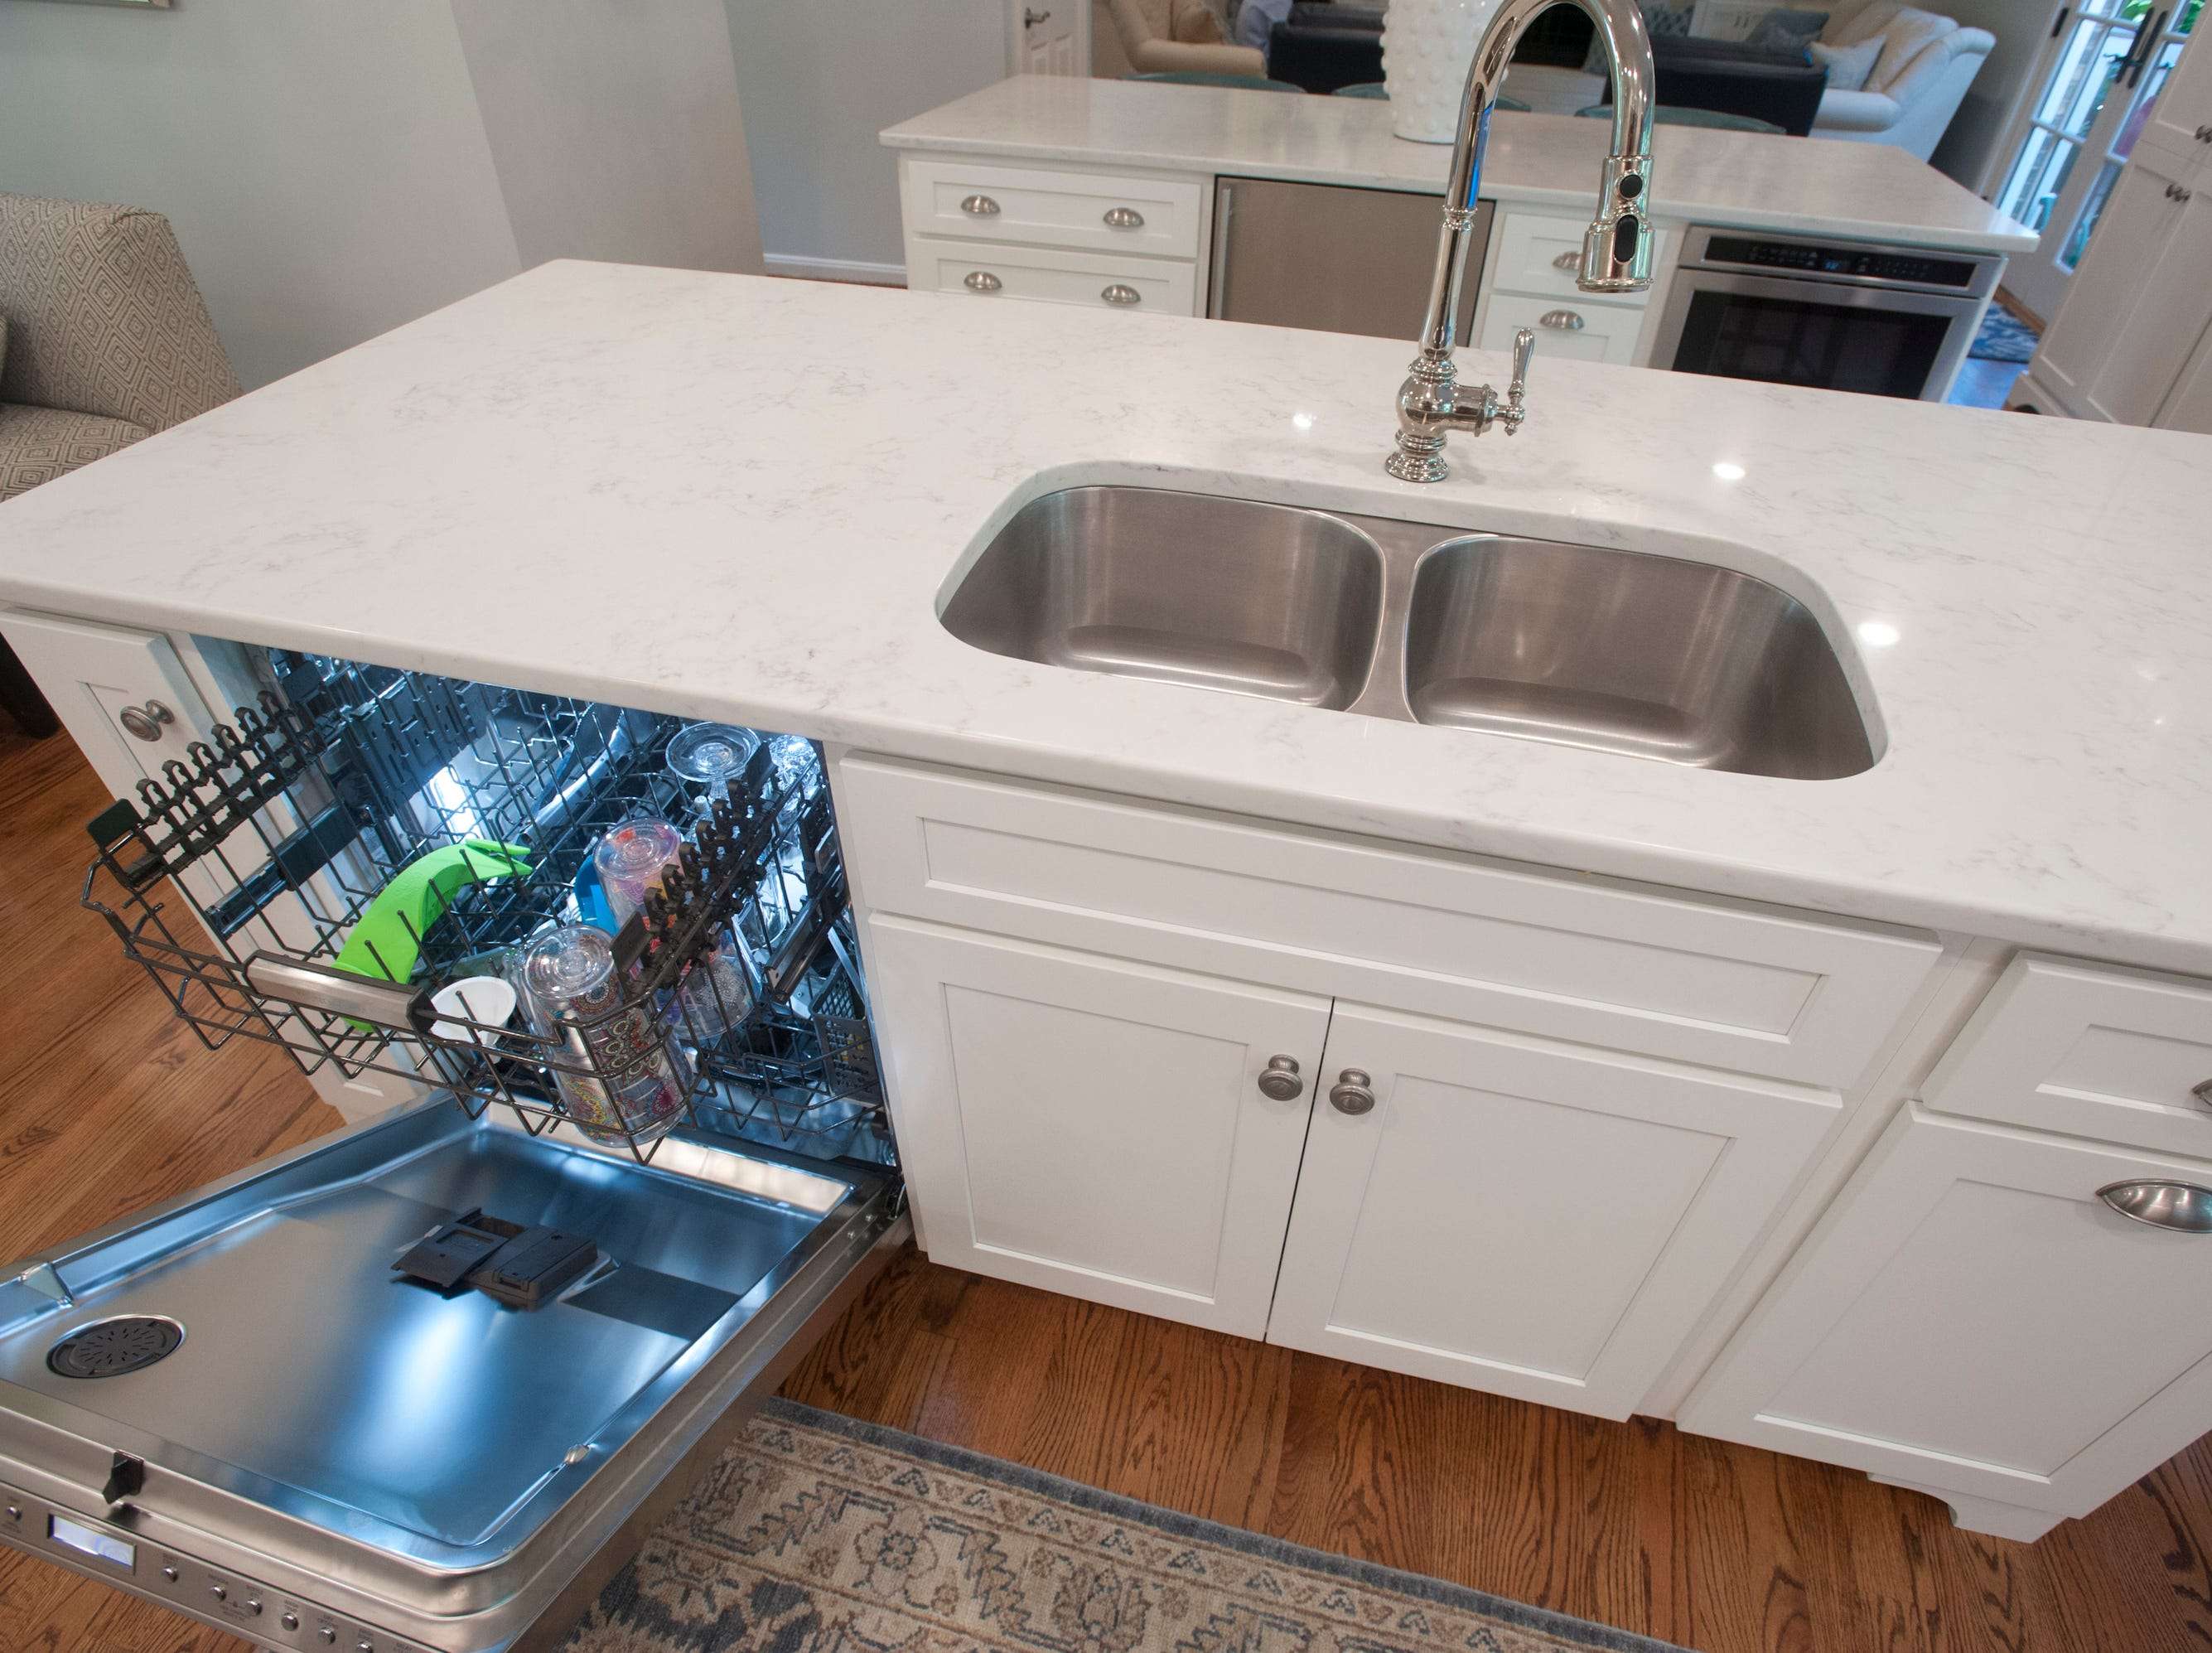 The dishwasher and sink island in the kitchen.